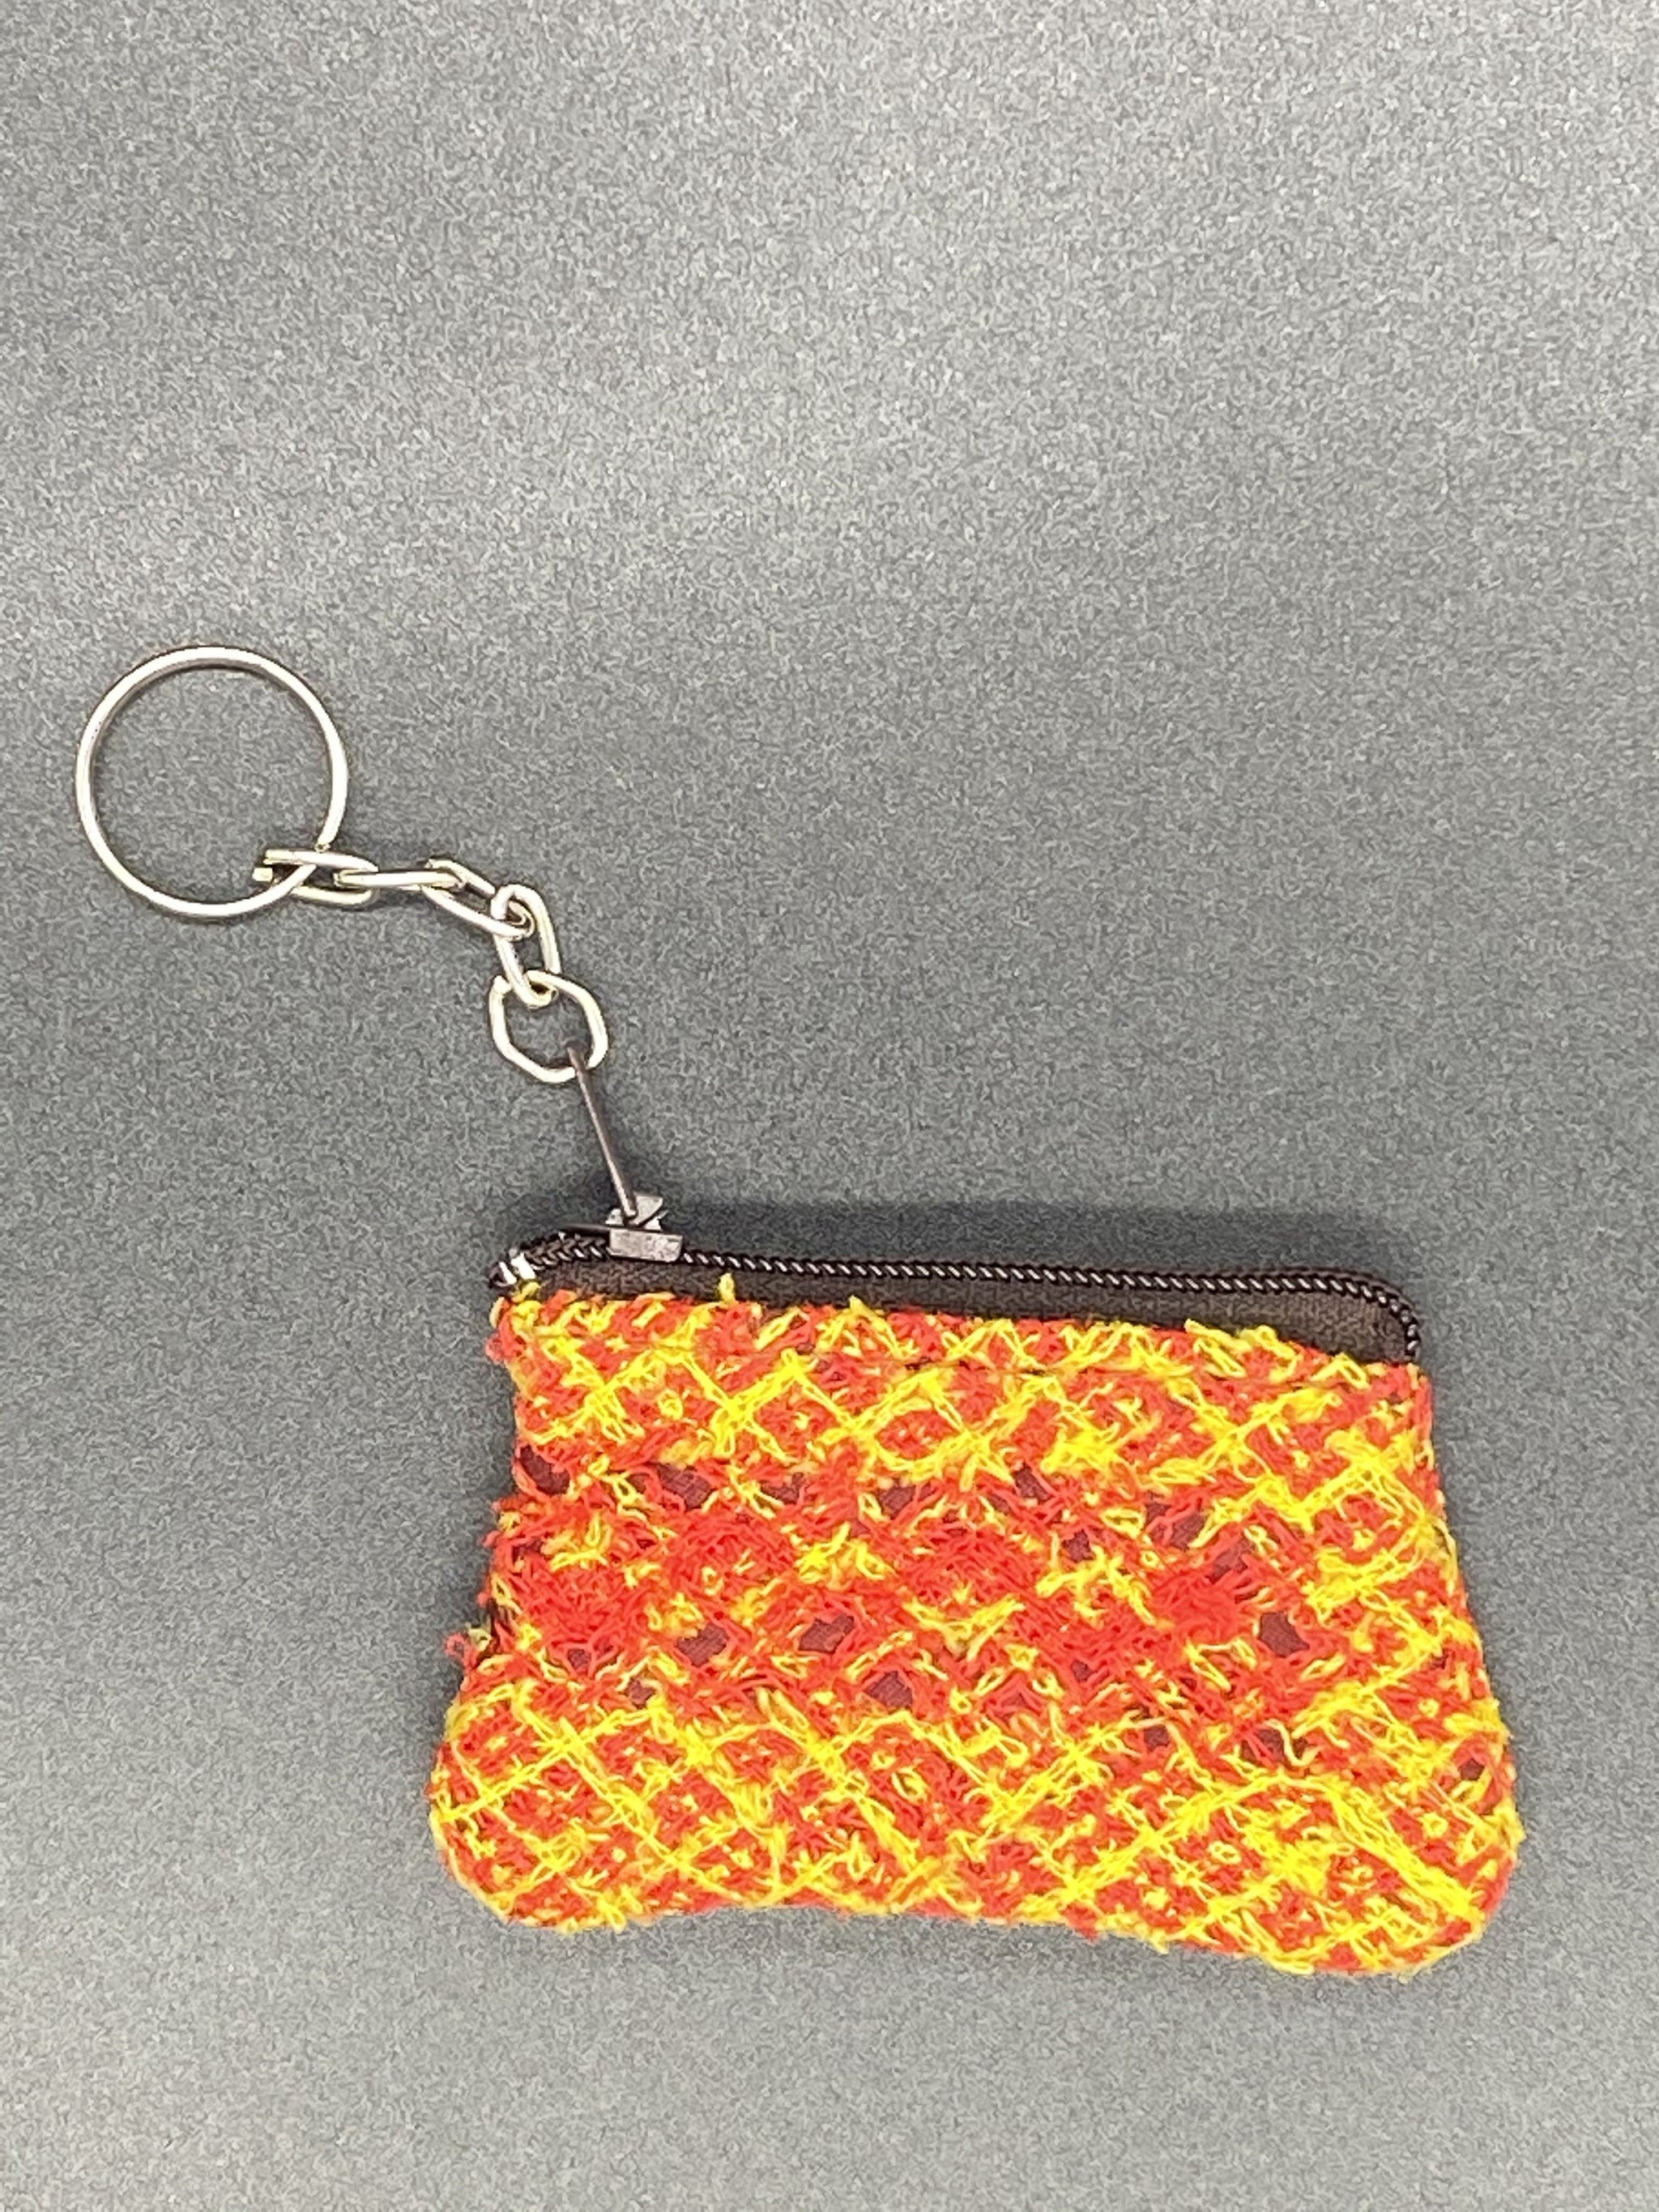 Mini Purse Hand Sewed Keychain - Corazón Clothing